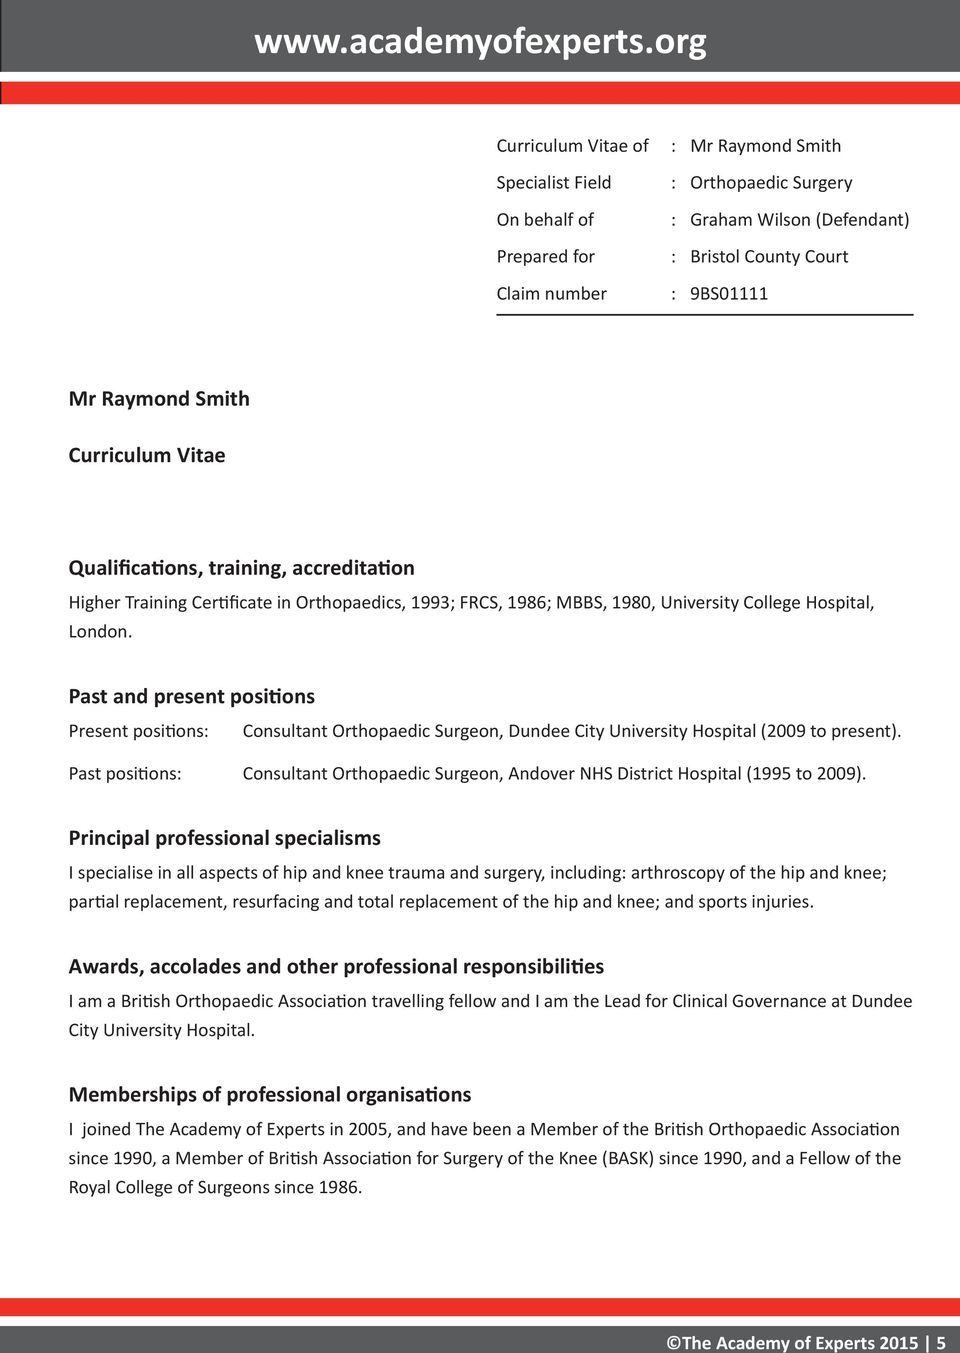 Curriculum Vitae Qualifications, training, accreditation Higher Training Certificate in Orthopaedics, 1993; FRCS, 1986; MBBS, 1980, University College Hospital, London.